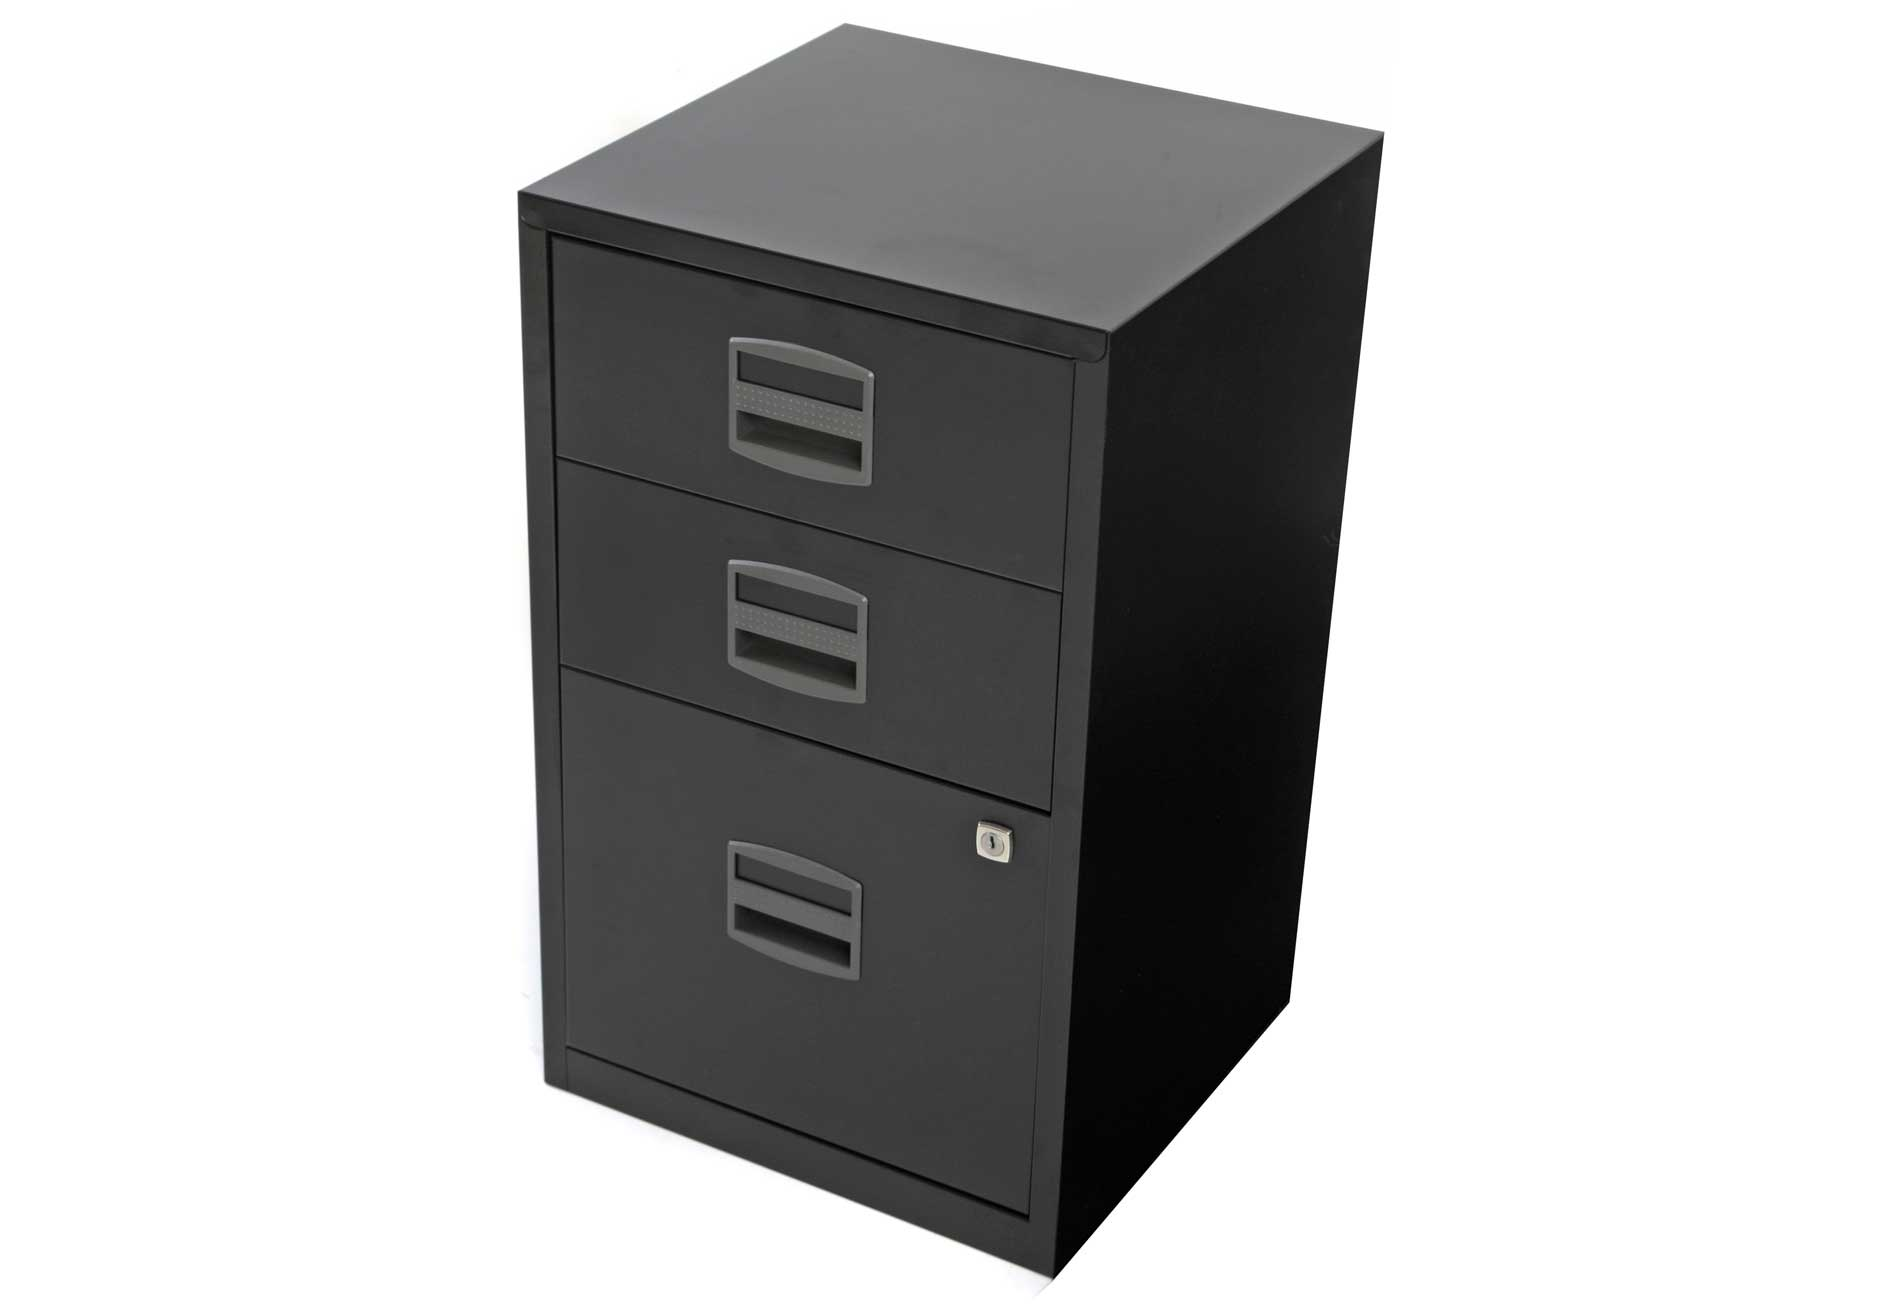 Bisley Black Steel Filing Cabinet with 3 Drawers